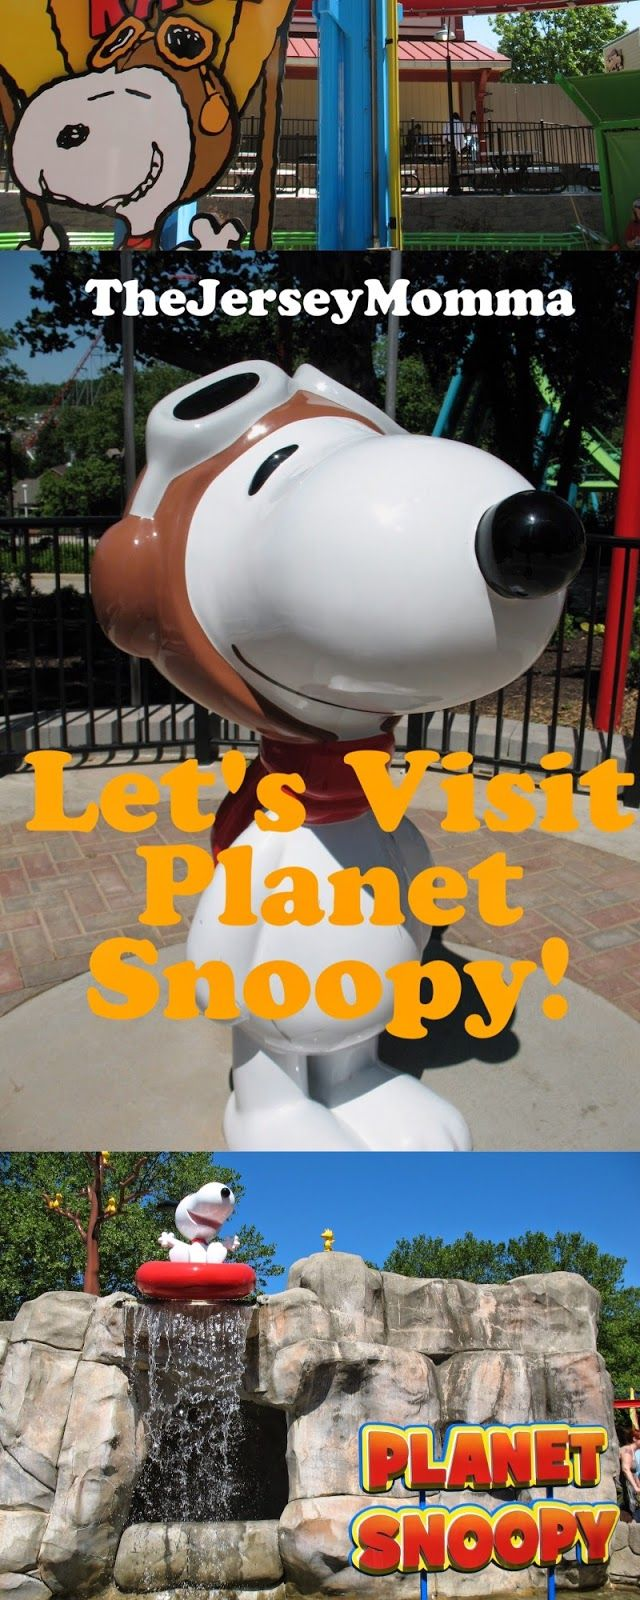 The Jersey Momma: A Review of PLANET SNOOPY in Dorney Park Allentown, PA